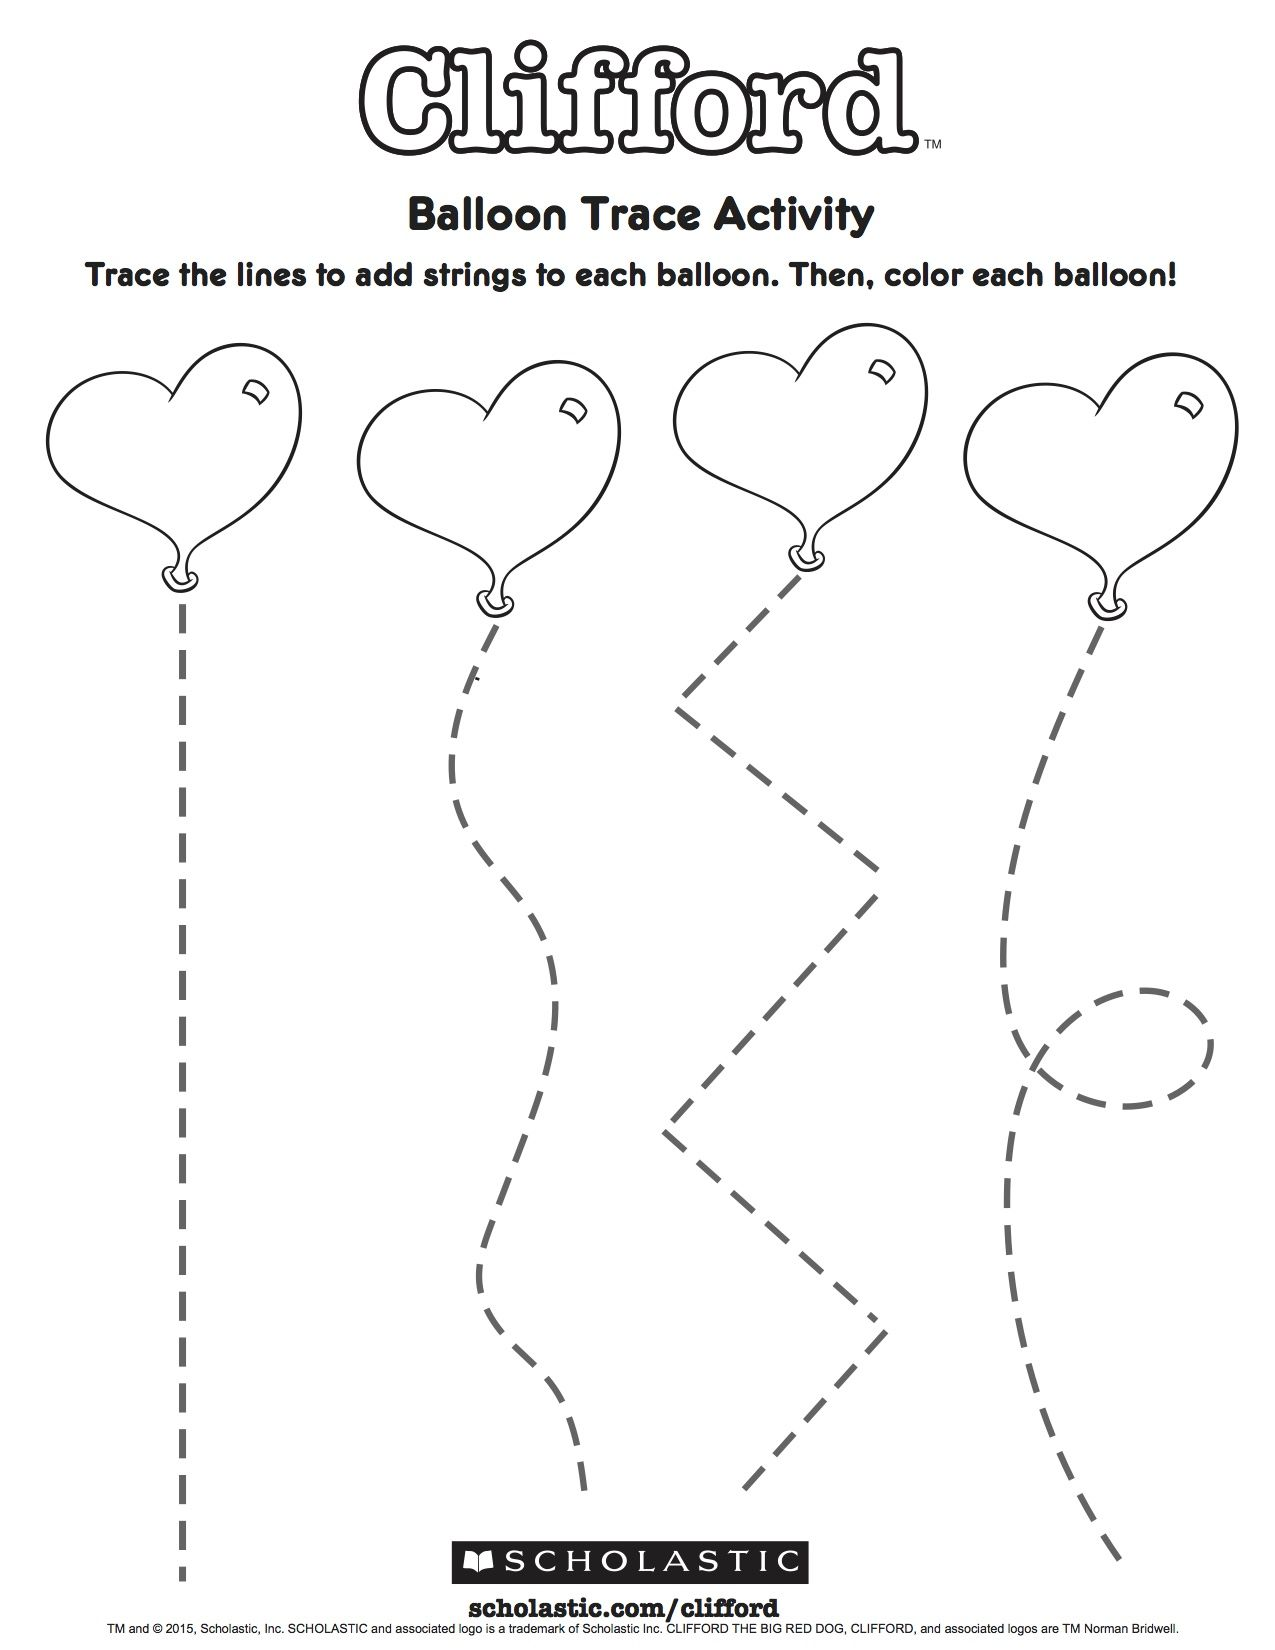 These Heart Balloons Need Strings Ask Your Child To Draw